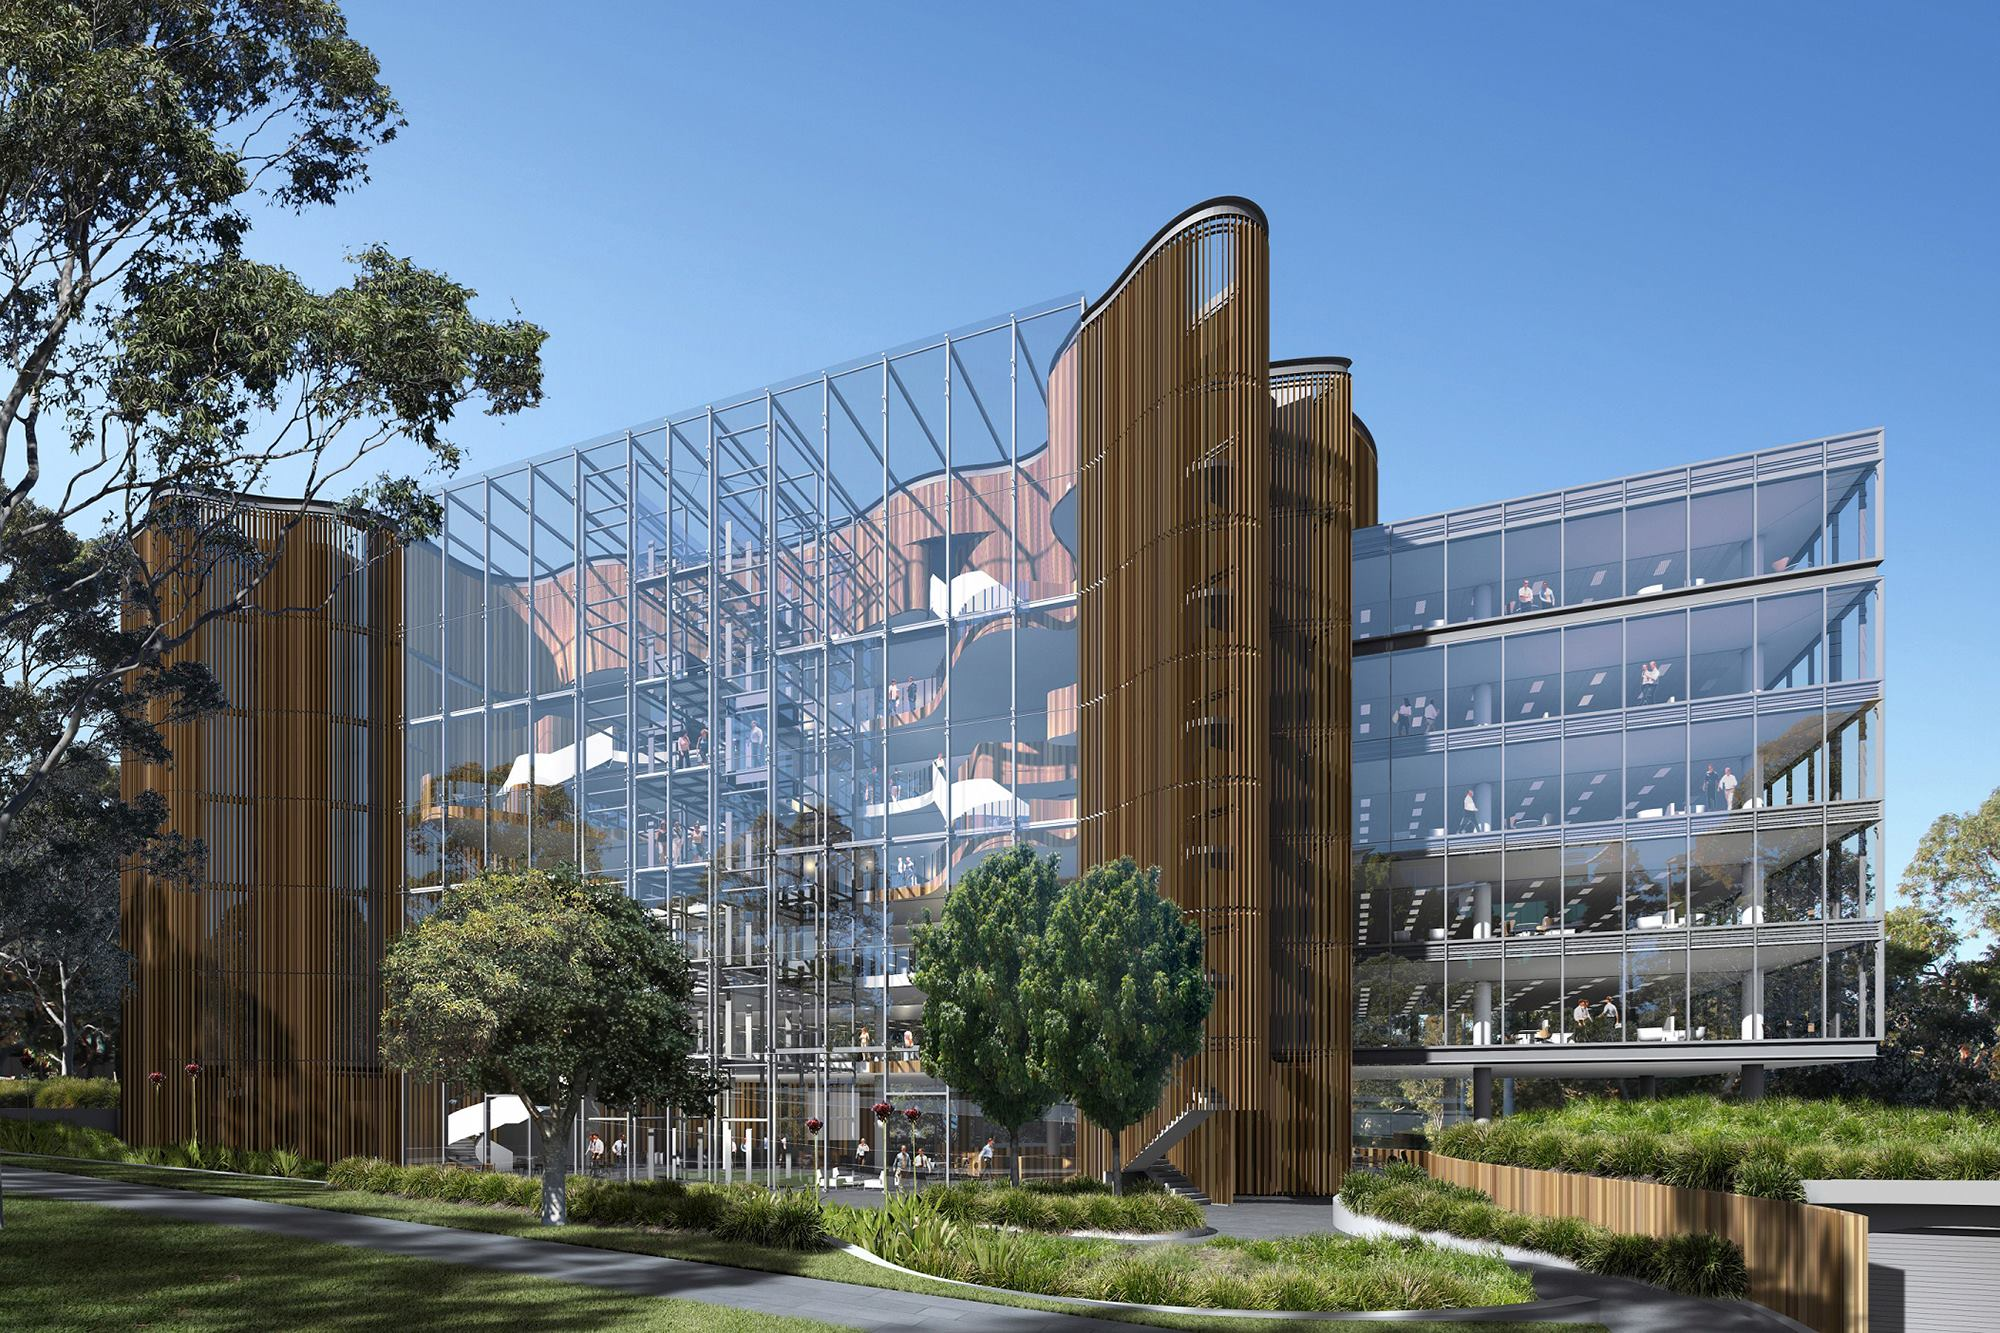 Hdr rice daubney design for novartis headquarters in for Top architecture firms sydney